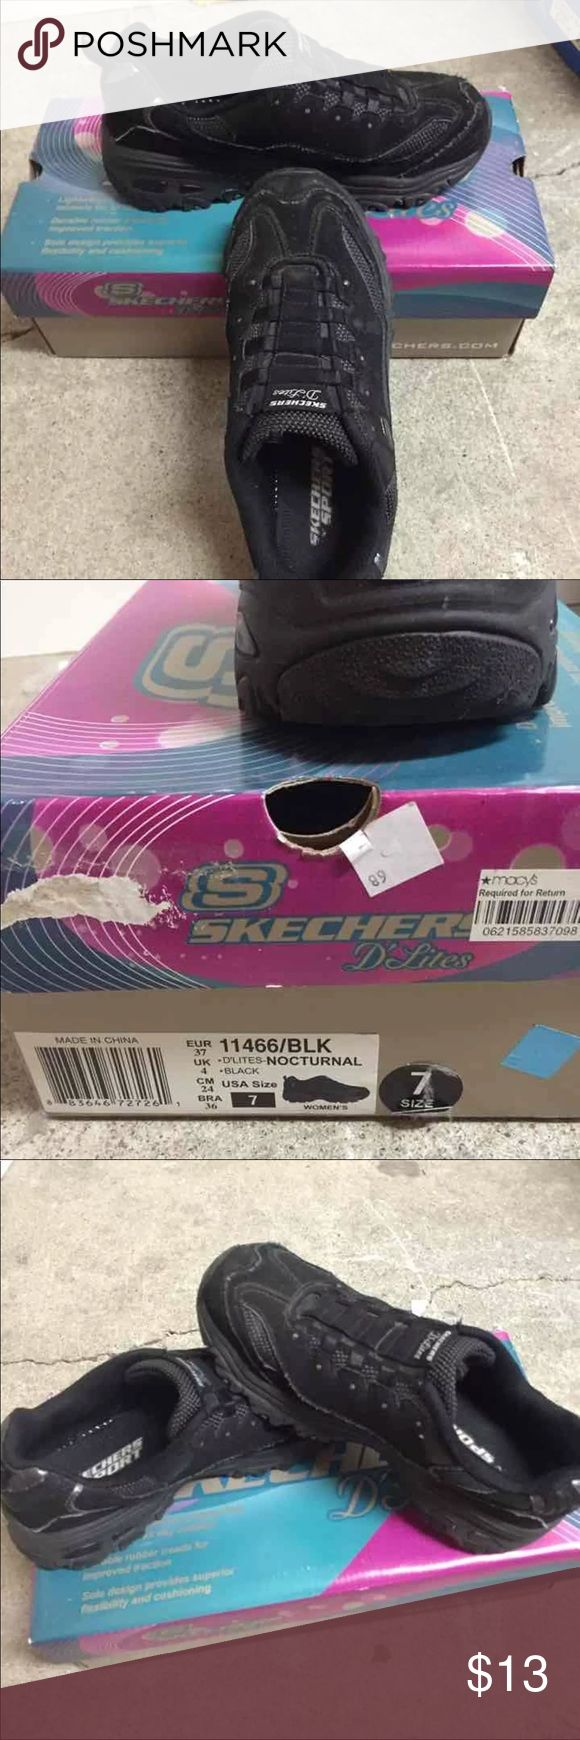 Black sketcher slip on size 7 Coming from non-smoking environment  Will take any reasonable offer  All sale are final Skechers Shoes Athletic Shoes